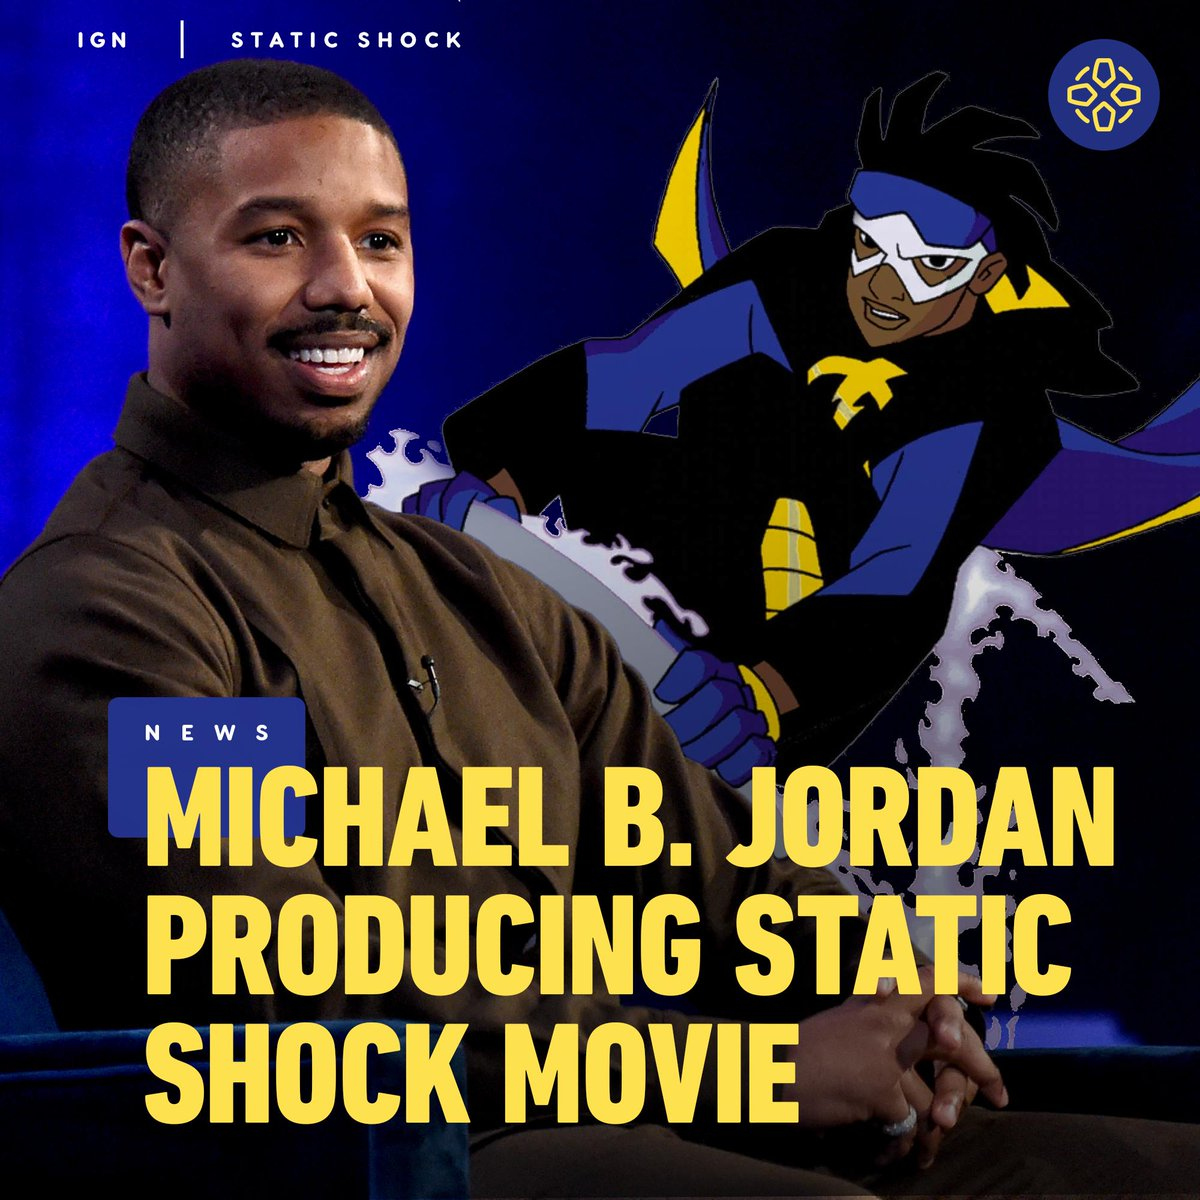 @IGN's photo on Static Shock